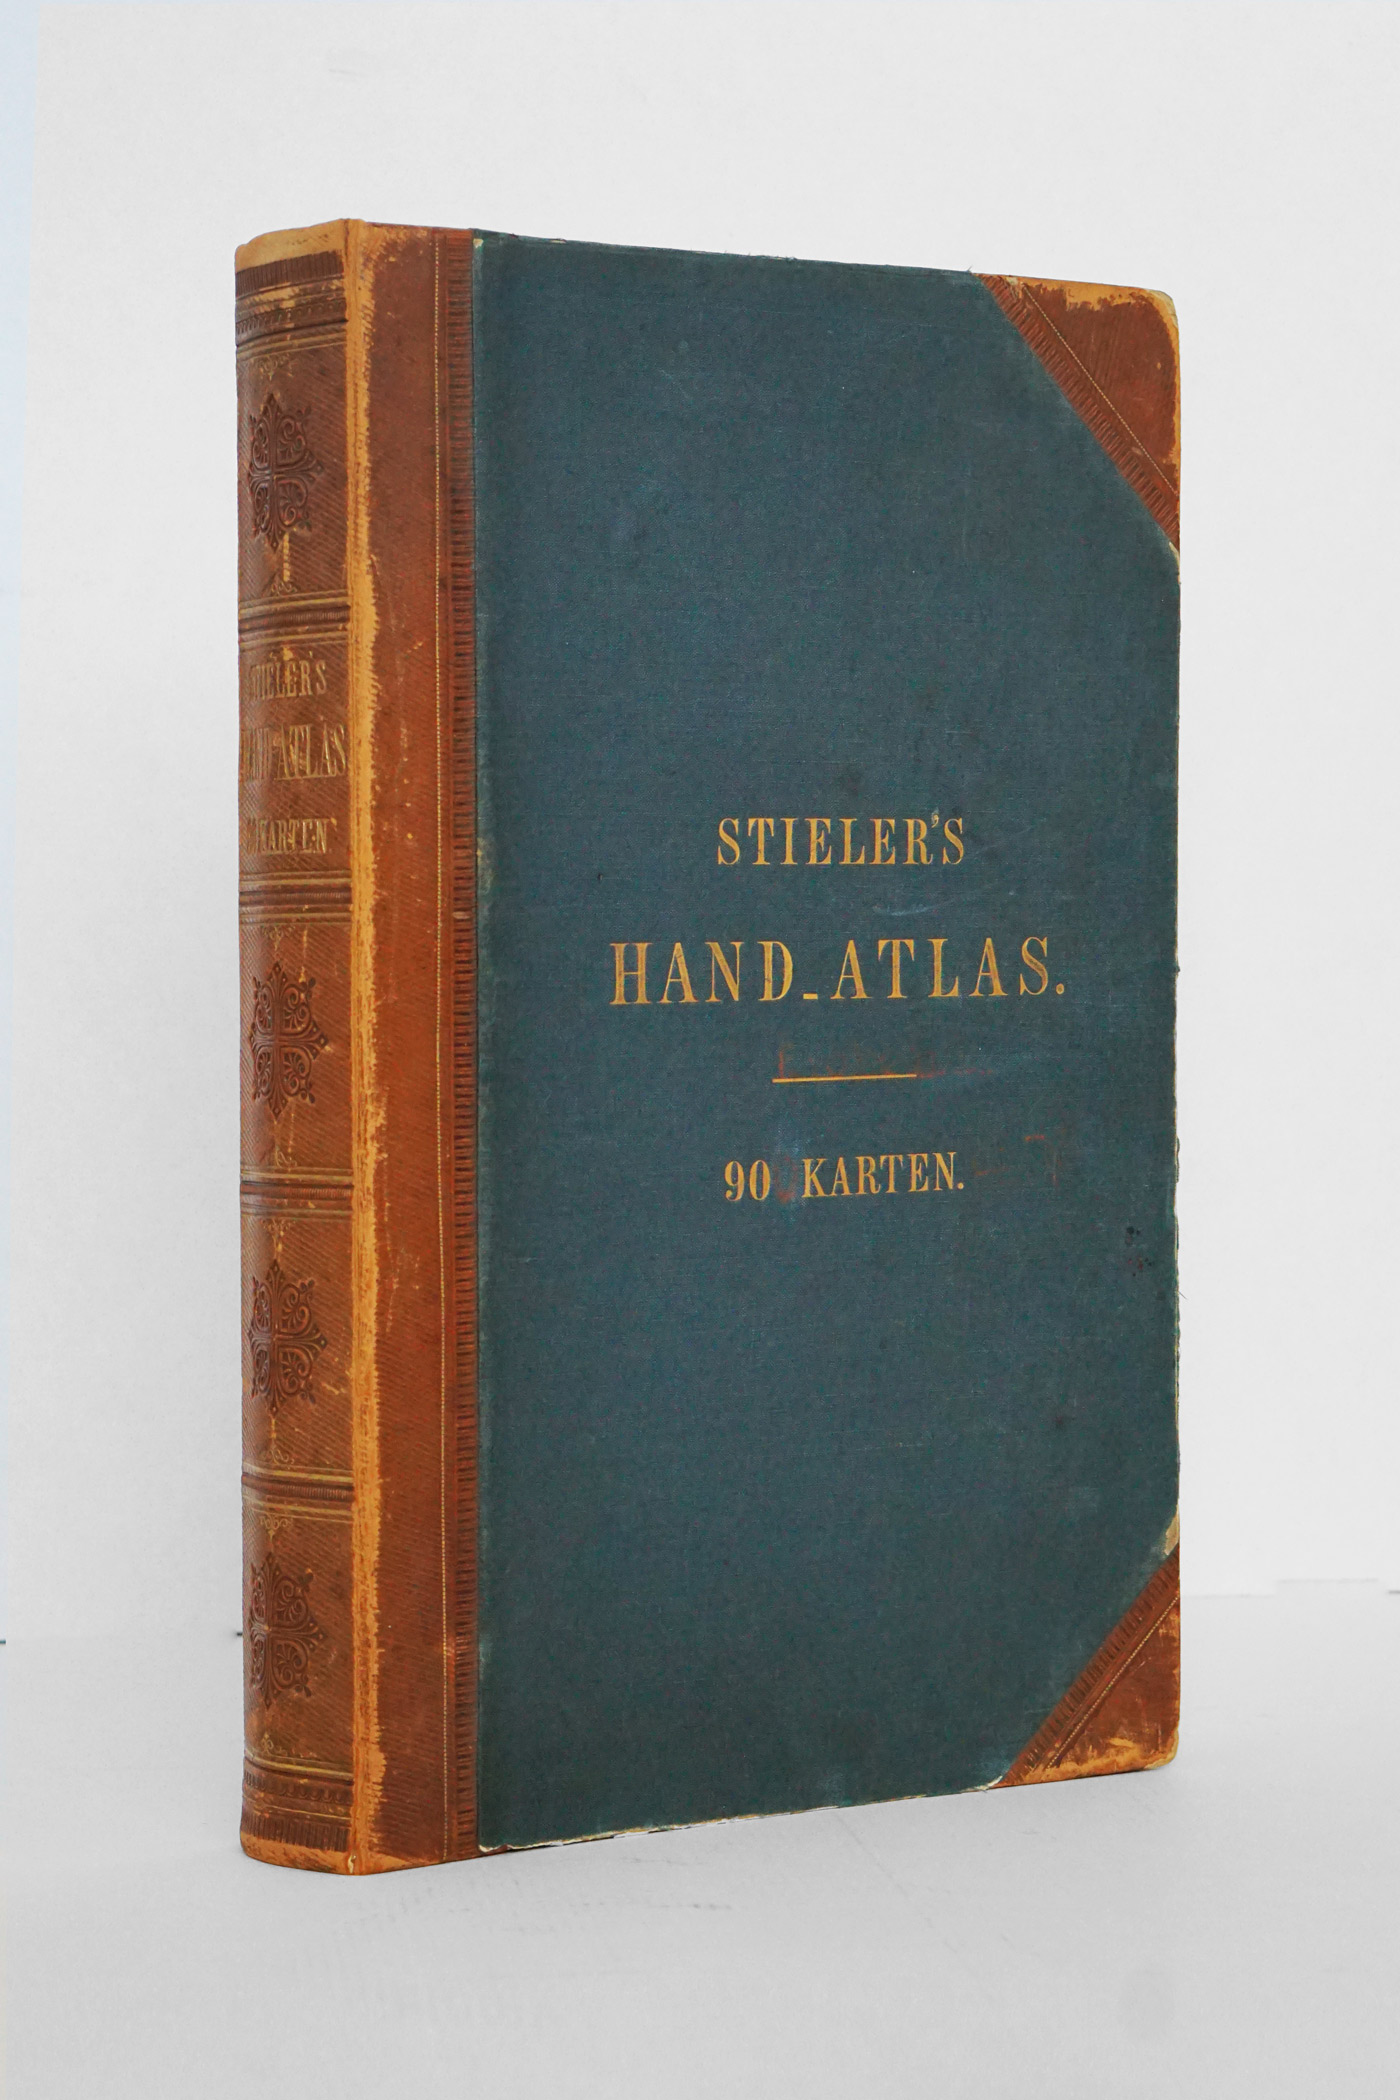 Stielers Hand-Atlas, 6th edition